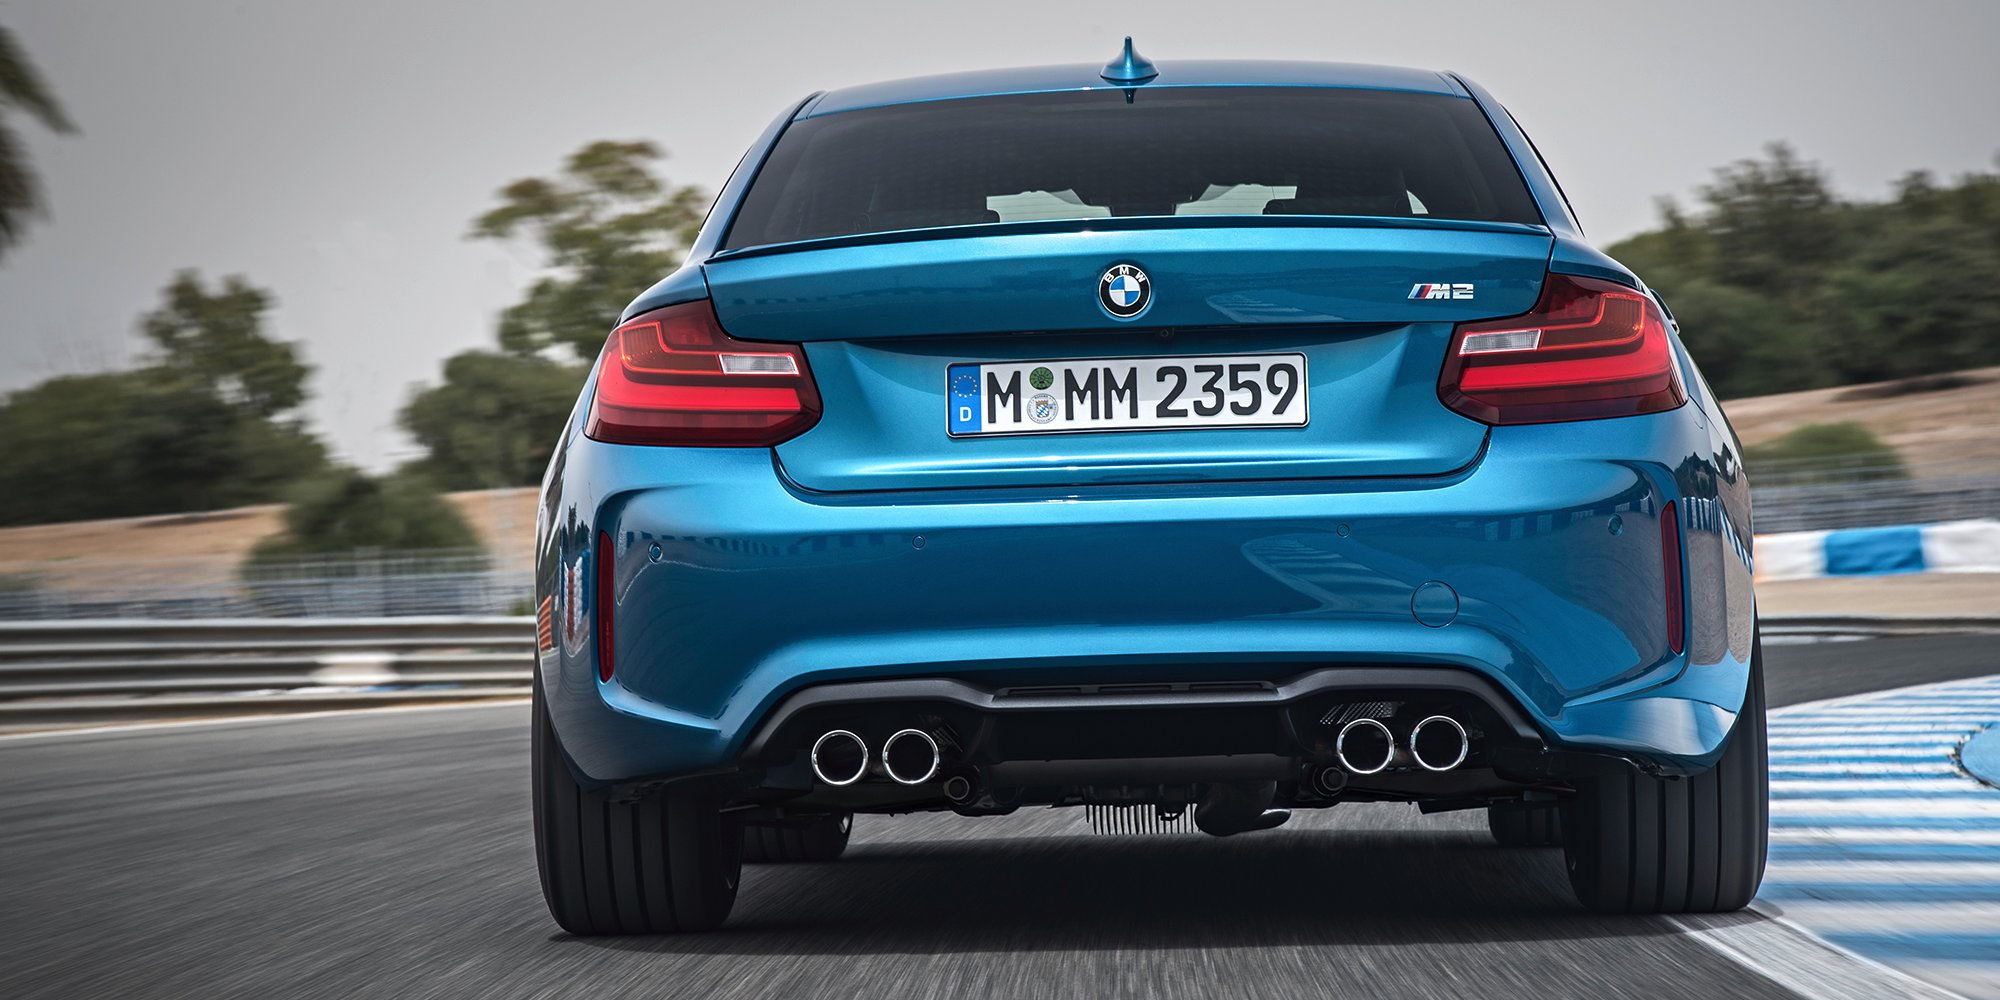 BMW M2 Coupe Wallpapers Widescreen   Car Wallpapers HQ 2000x1000